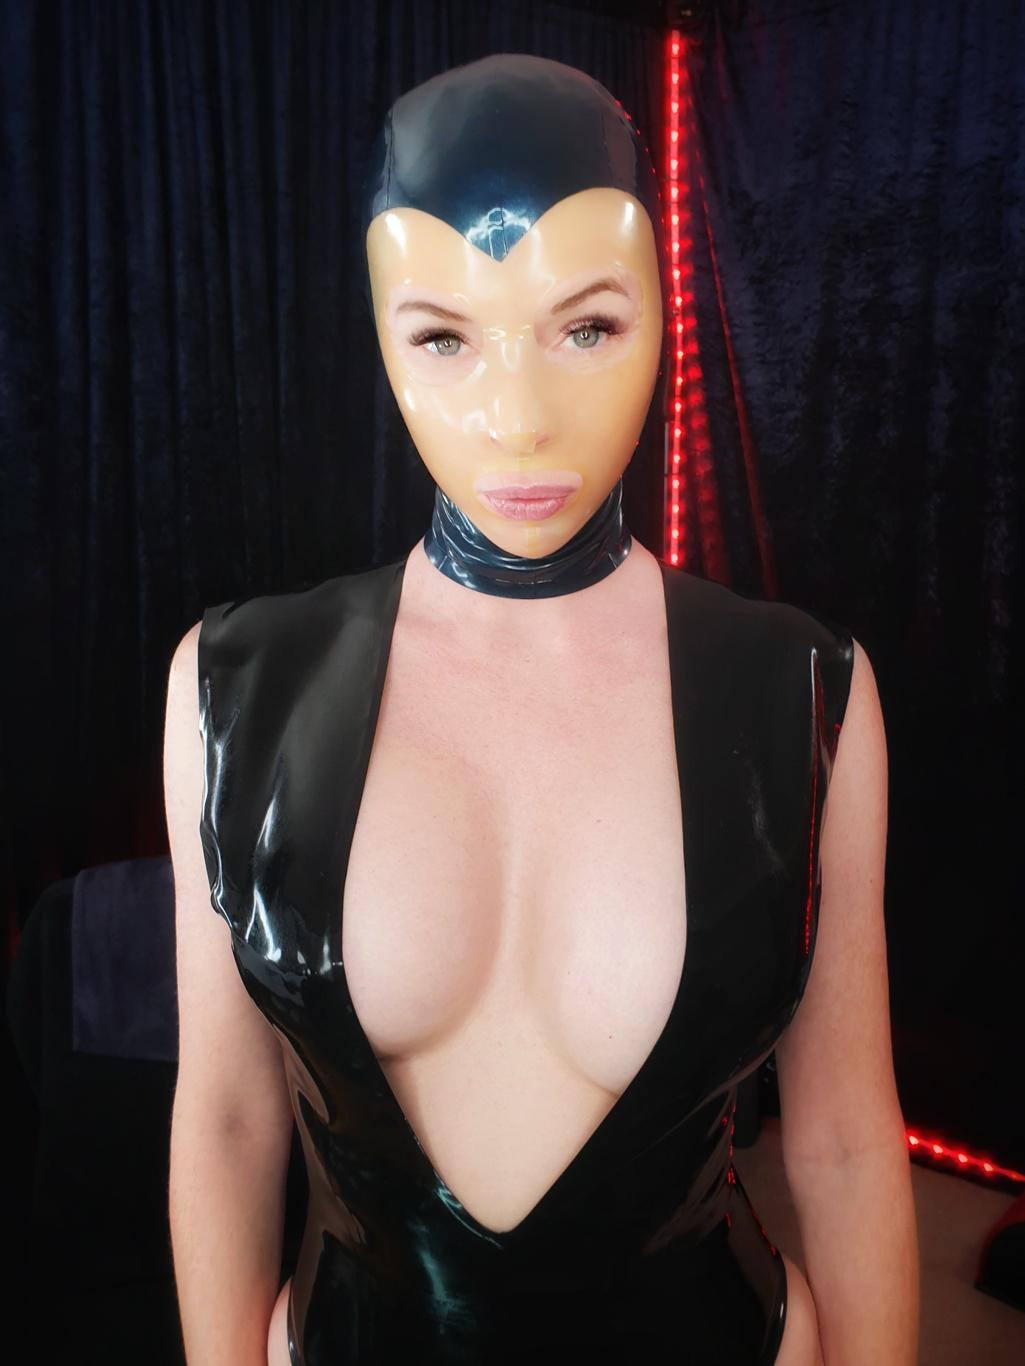 Just Can't Go A Day Without Latex On My Skin. Would You Date Me Like This?